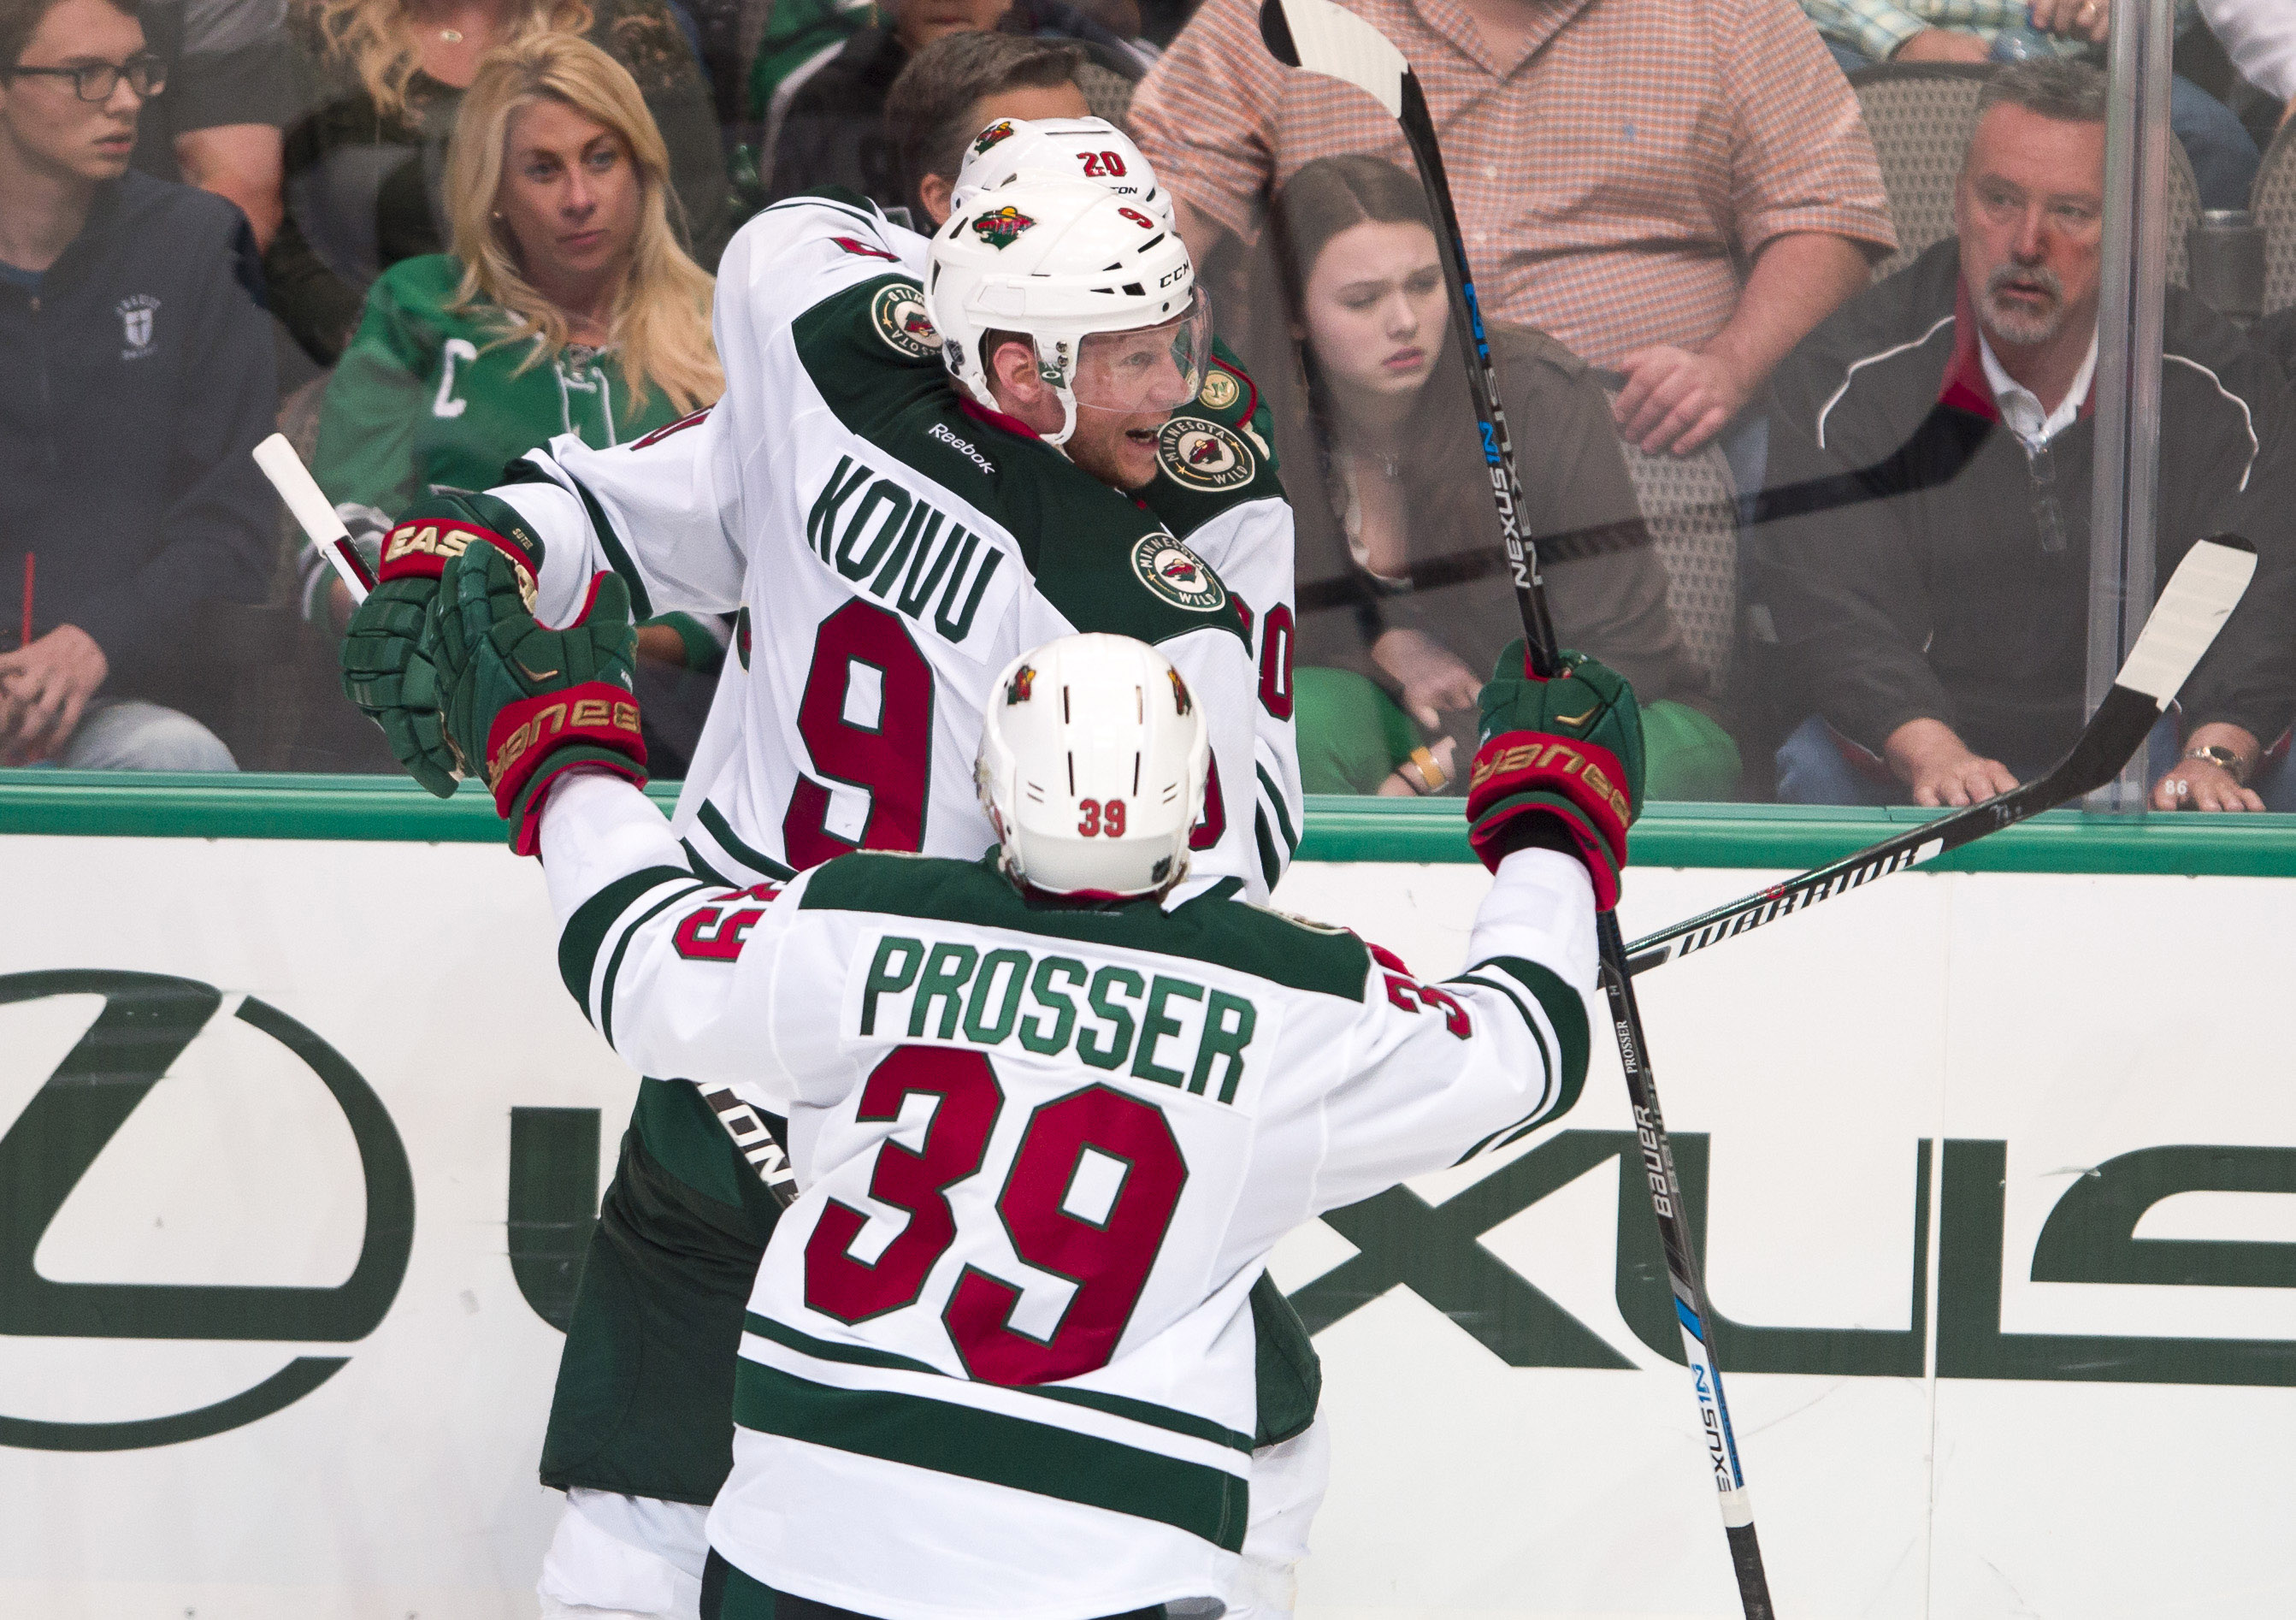 """In case you've never seen this before, it's called """"Joy on Mikko Koivu's face""""."""